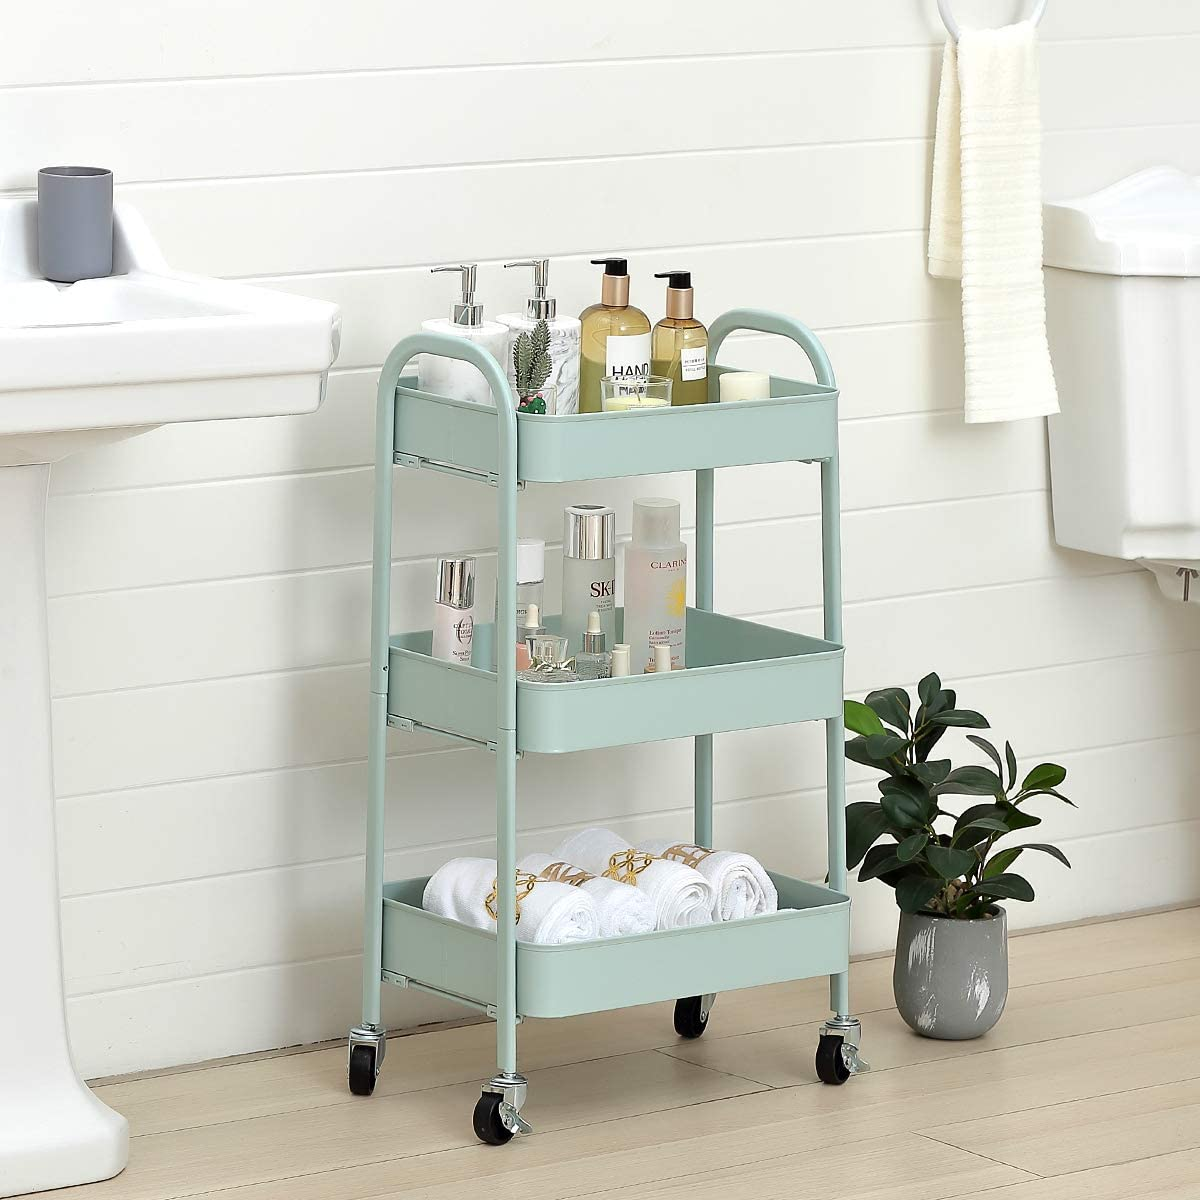 White LEMONDA 3 Tier Rolling Storage Cart,Multifunctional No Screw Utility Cart,Serving Trolley Organizer Cart for Home,Kitchen,Living Room,Bathroom,Office Use